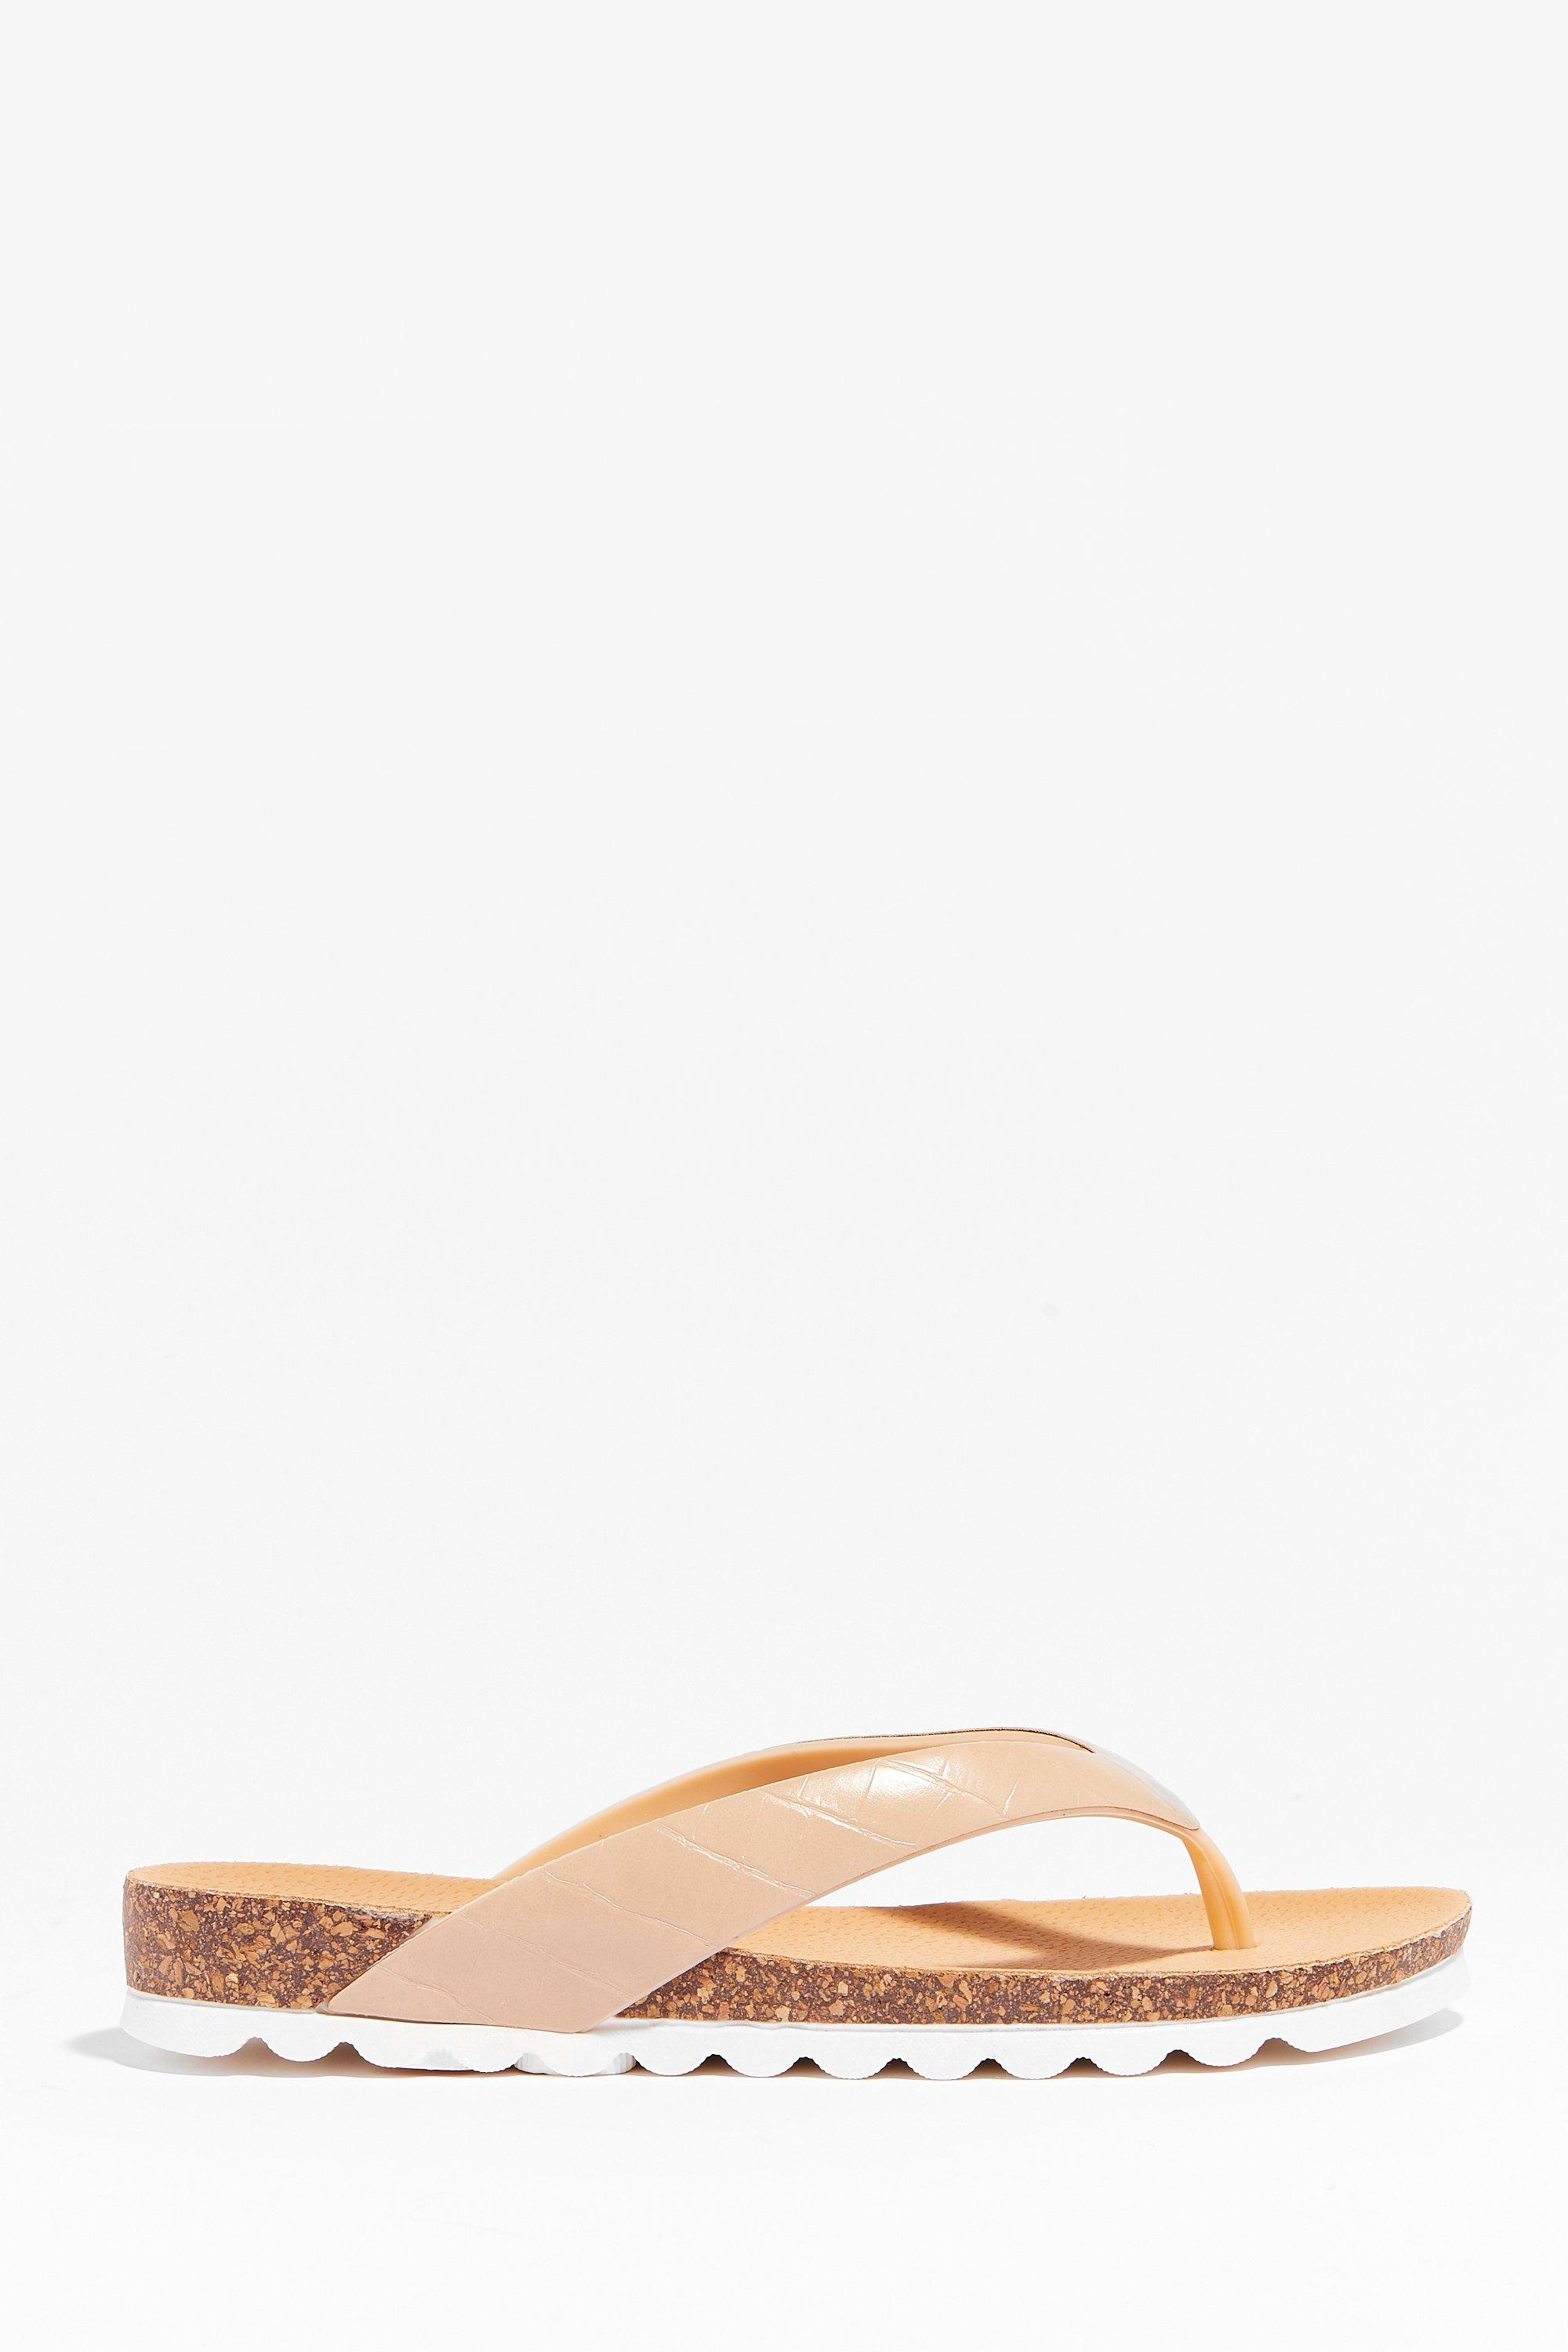 Image of Womens Croc It Out Faux Leather Flat Sandals - Beige